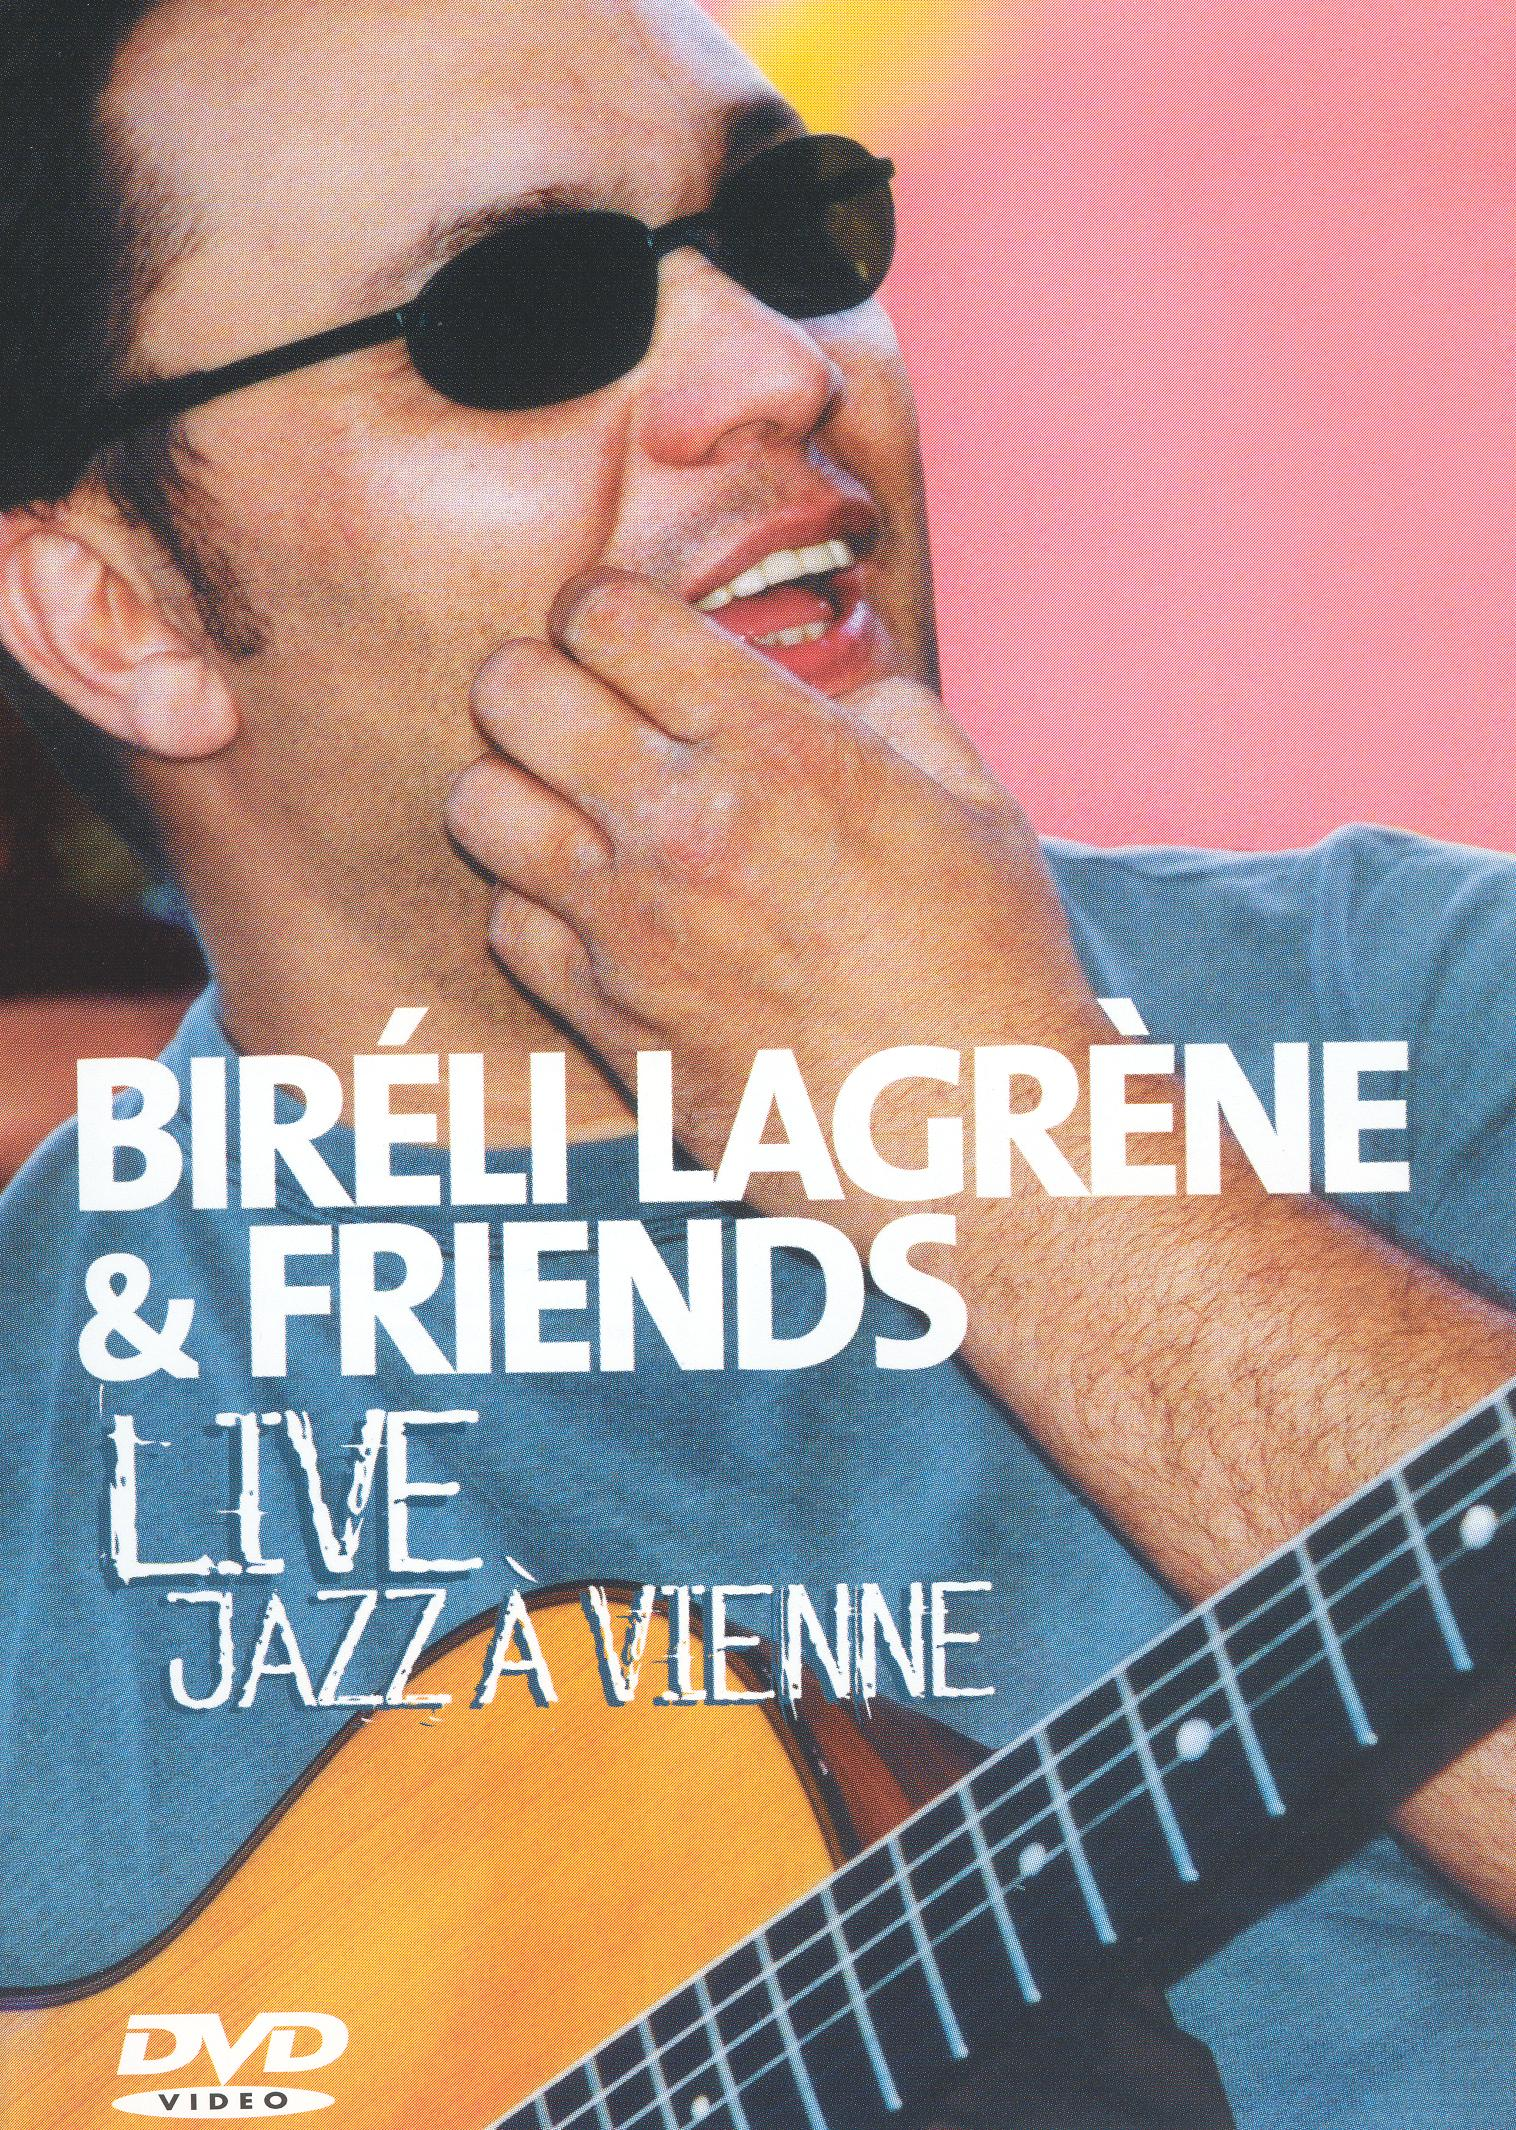 Bireli Lagrene and Friends: Live Jazz A Vienne